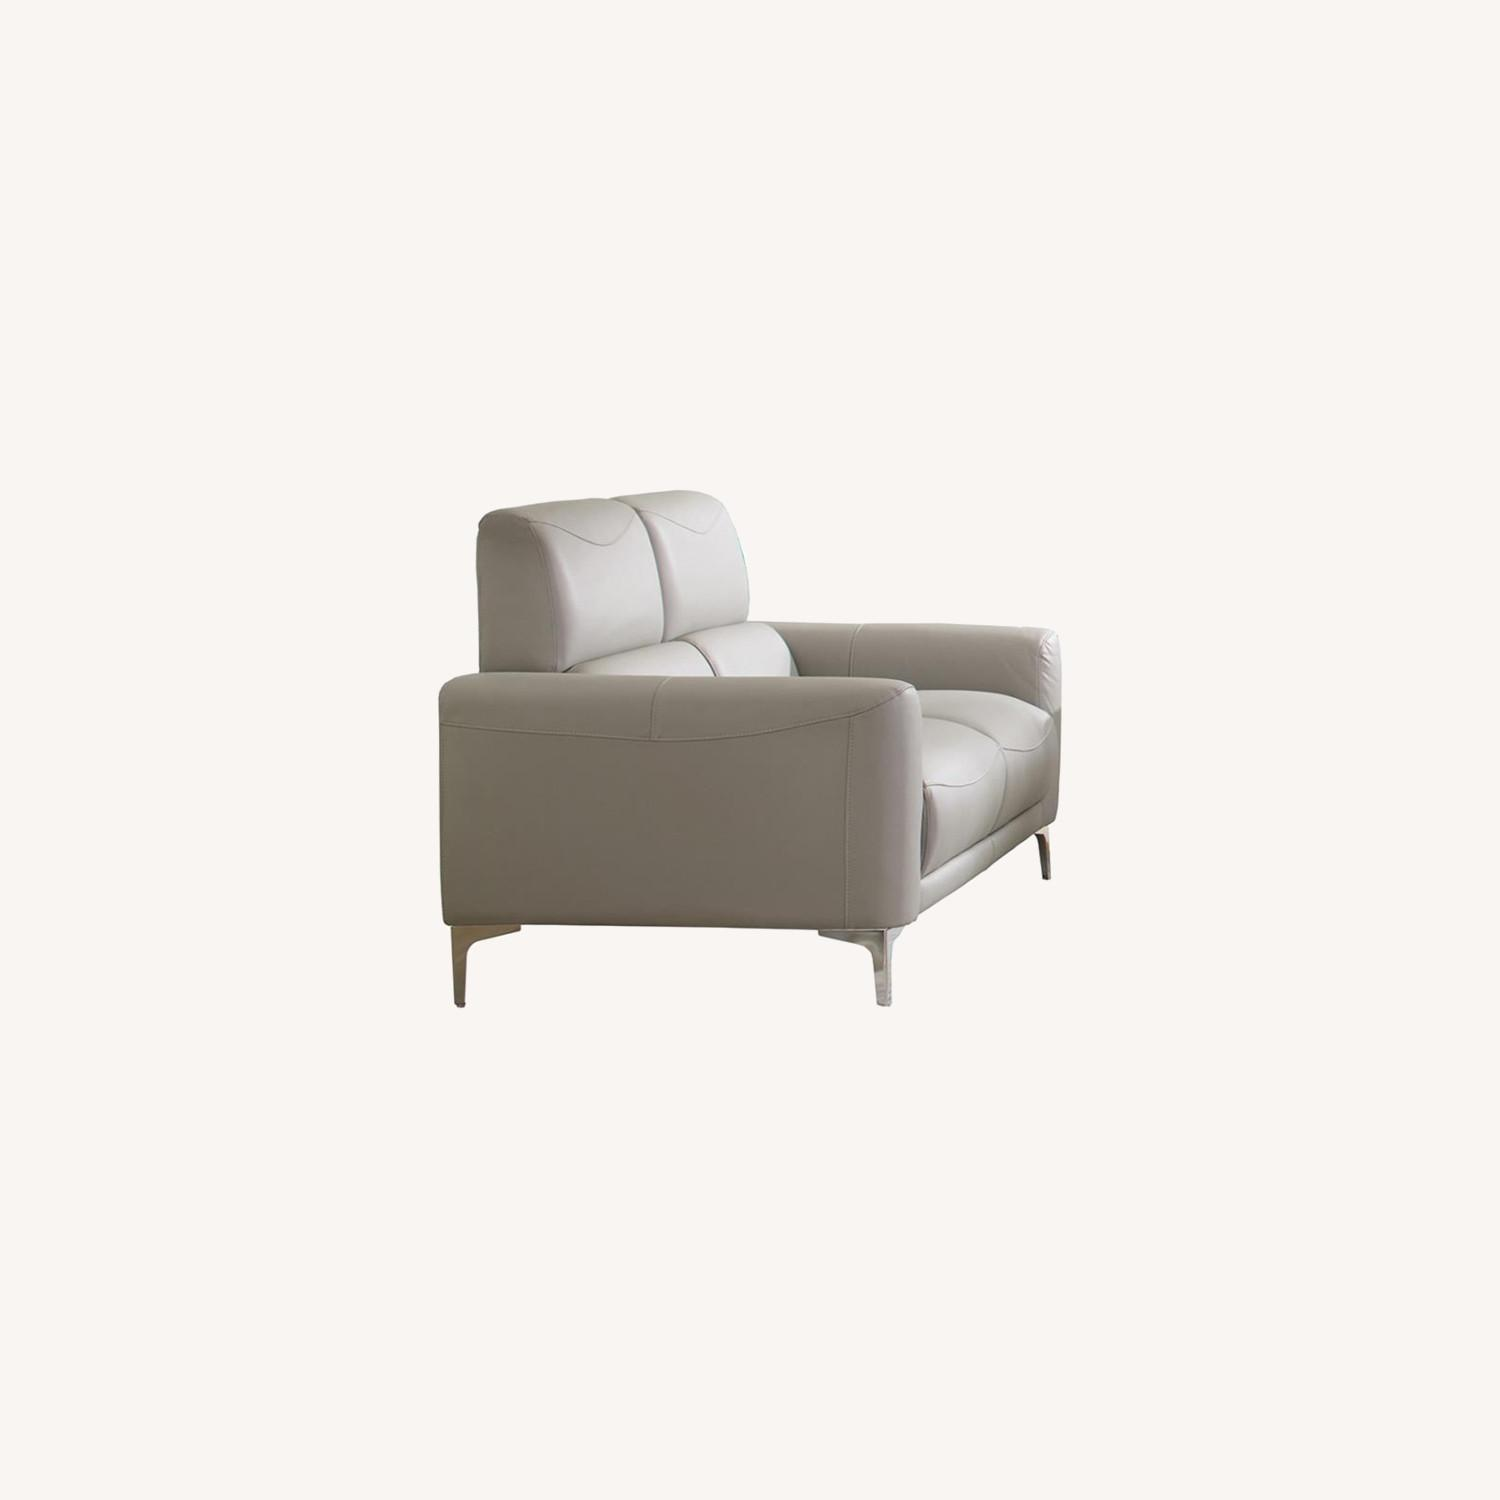 Loveseat In Soft Taupe Leatherette Upholstery - image-3